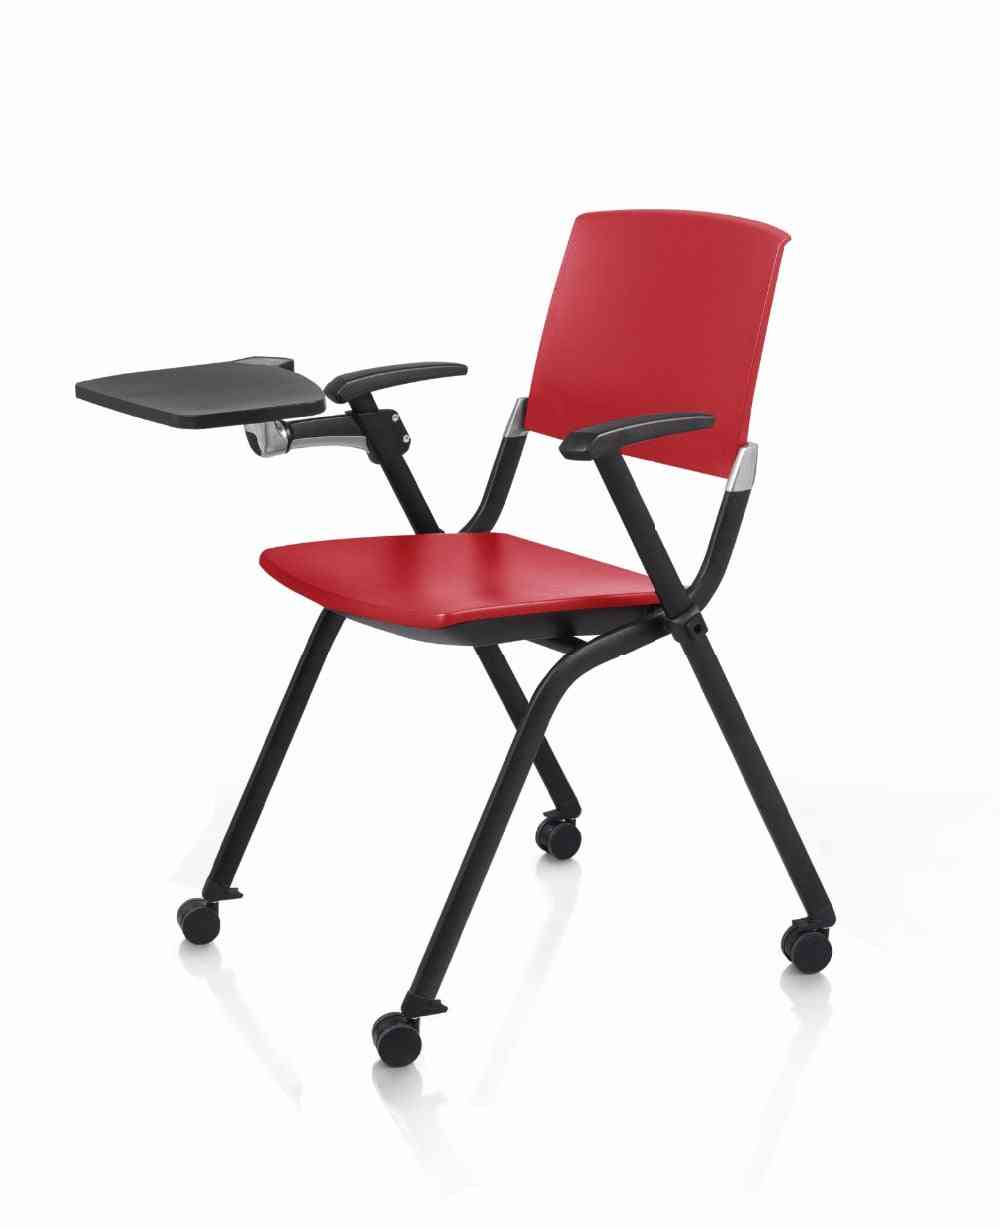 Folding Chair With Writing Board For Office, Home